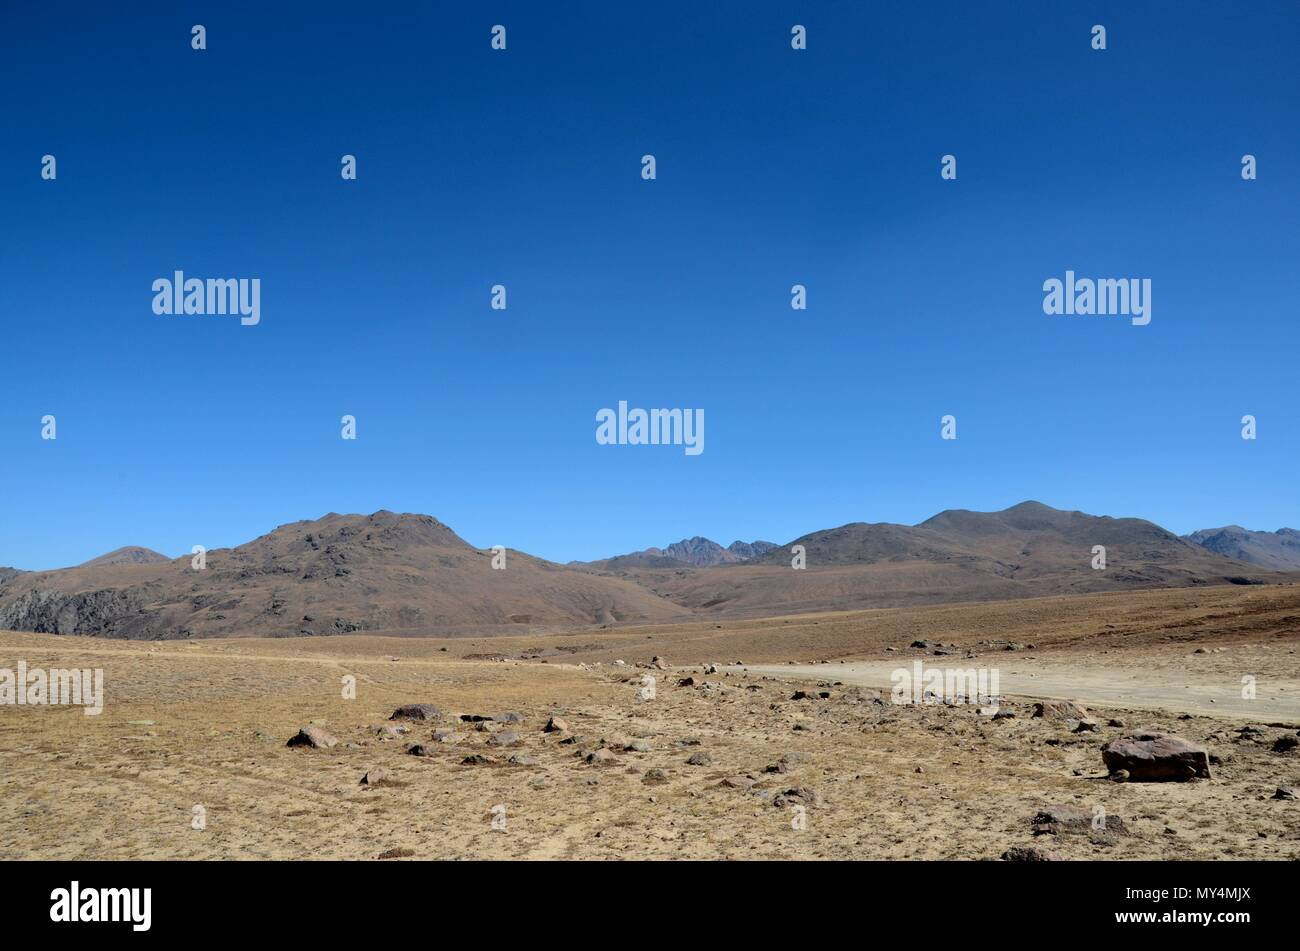 Scientific equipment by deserted and empty road in dry and barren Deosai Plains Gilgit-Baltistan Pakistan - Stock Image